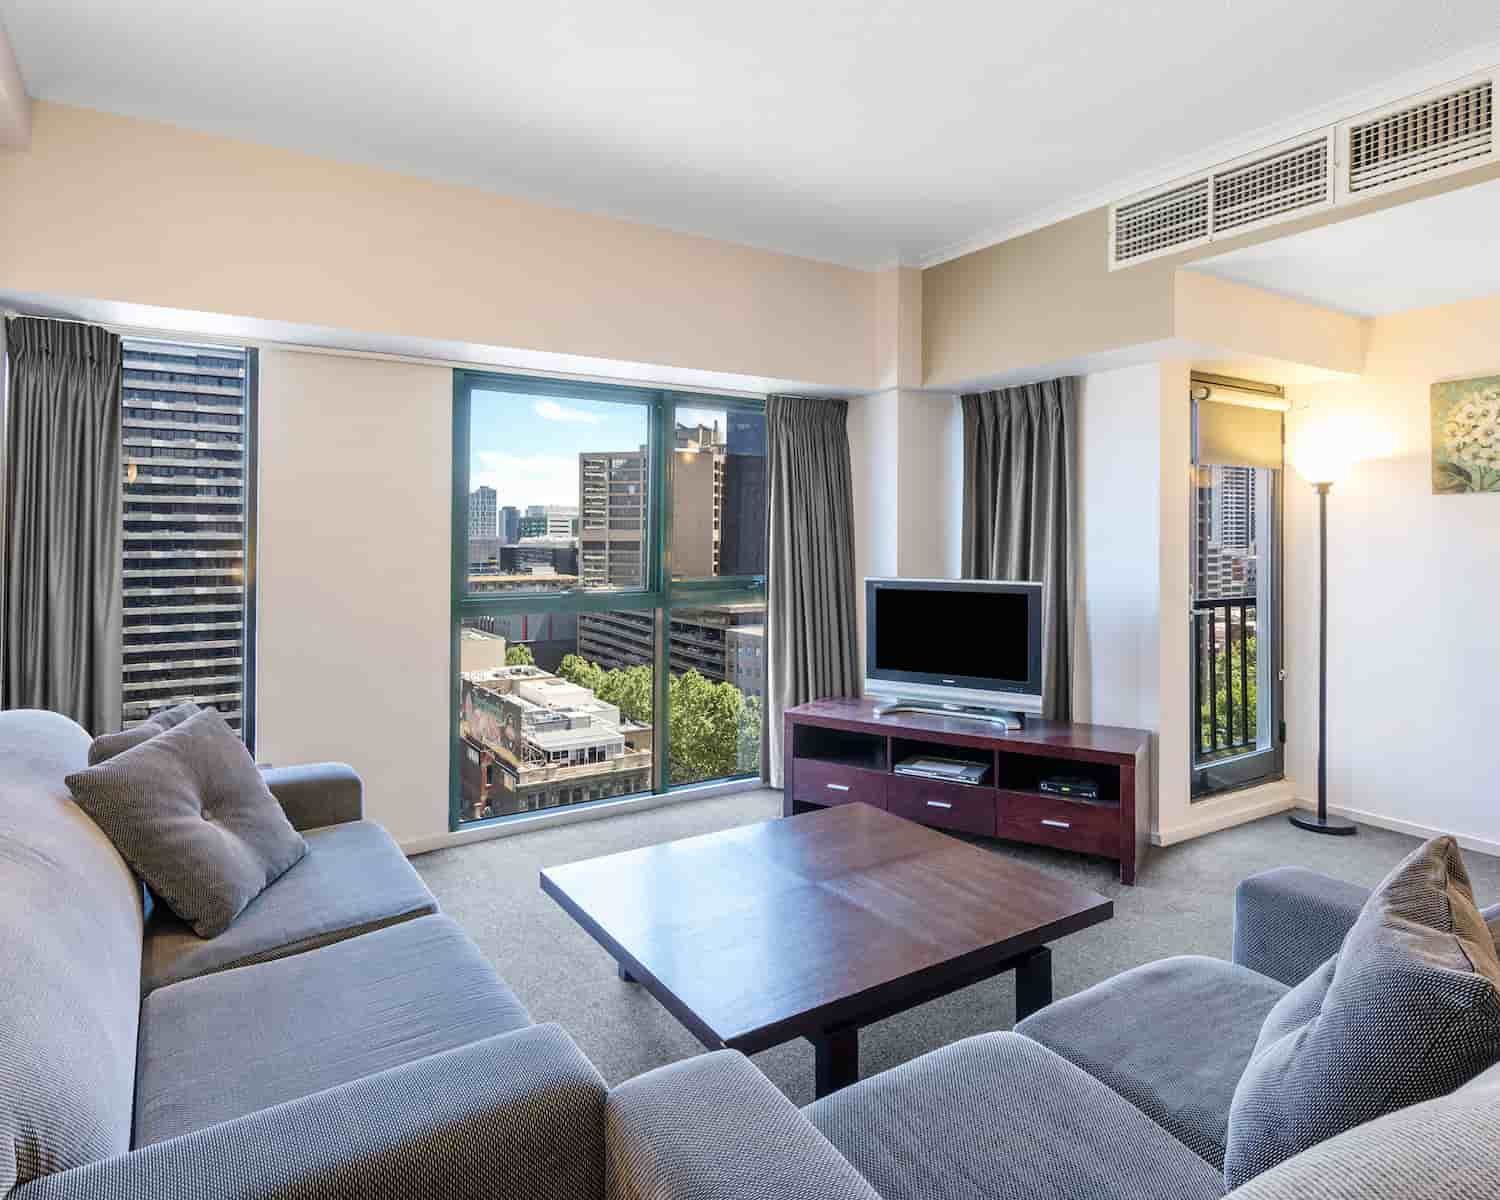 riverside apartments melbourne vic accommodation two bedroom deluxe apartment7 copy 2